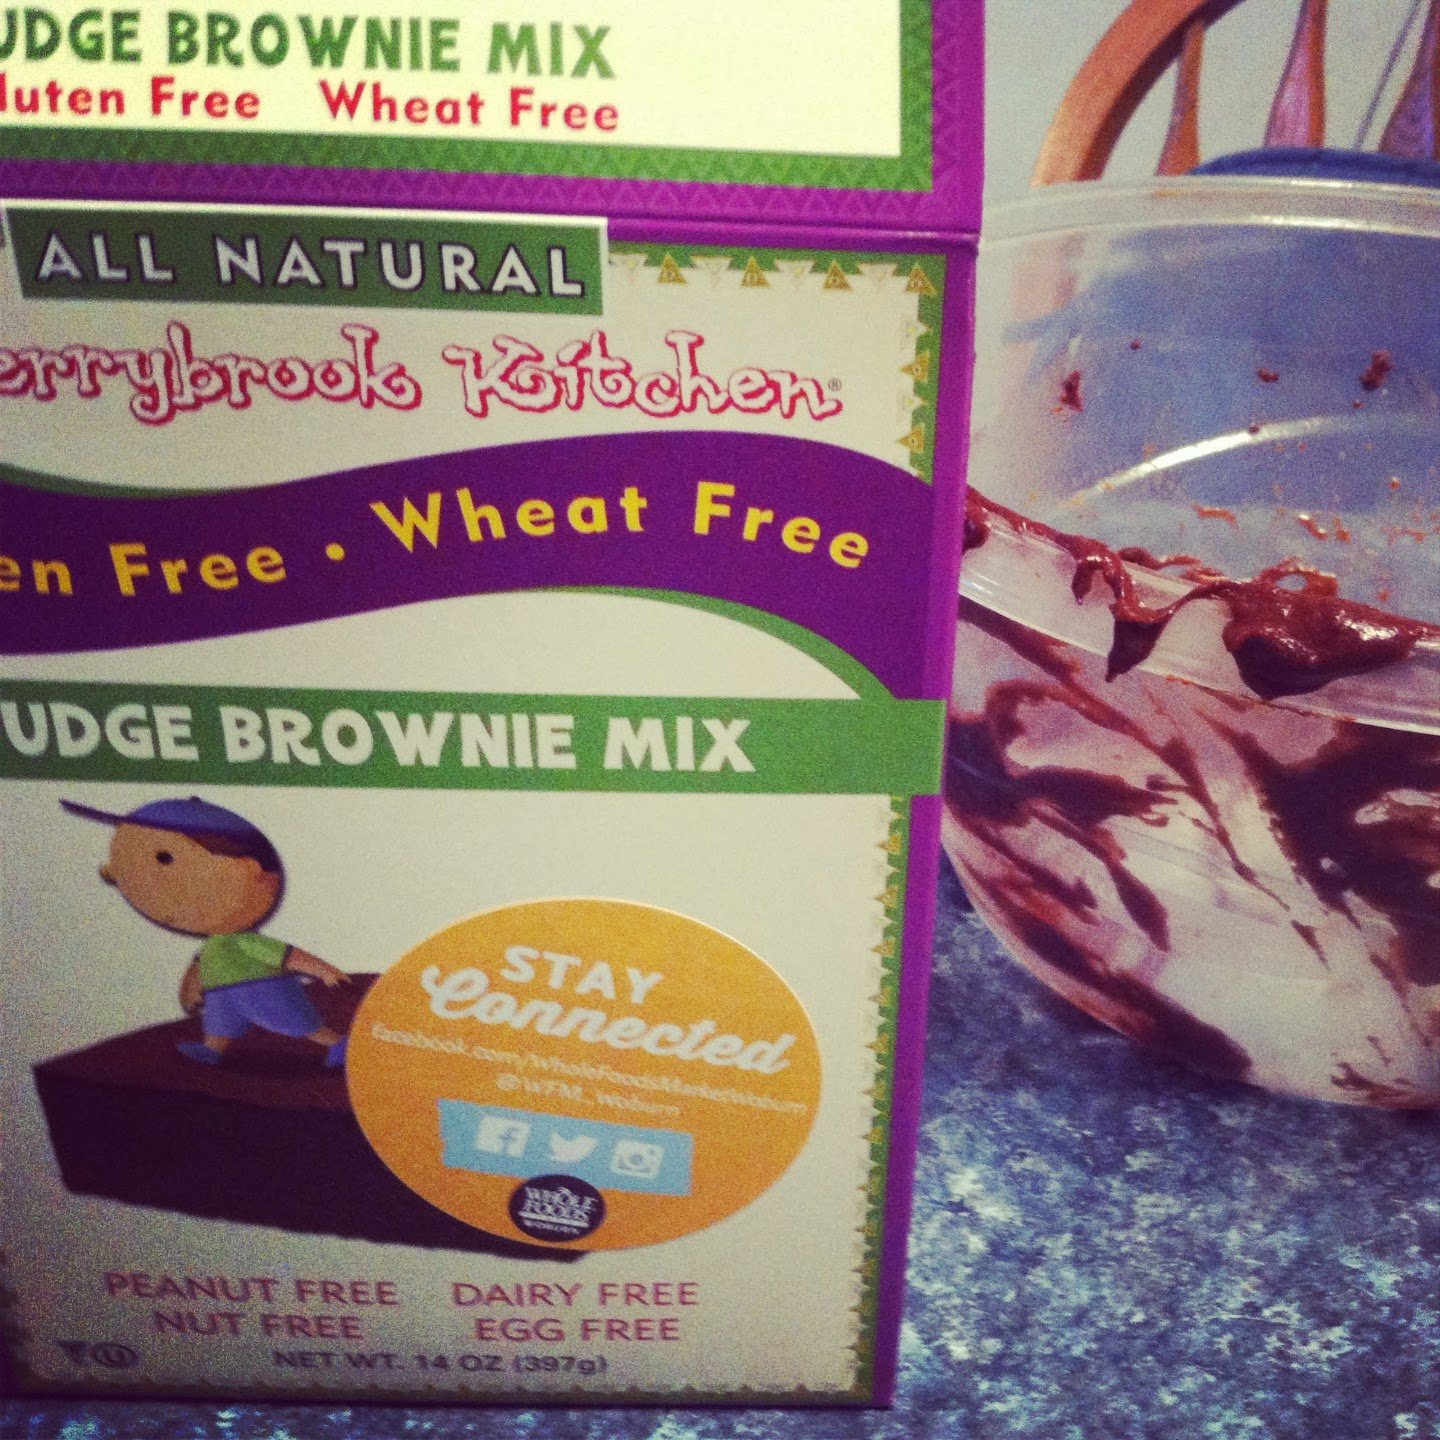 Cherrybrook Kitchen brownie mix one item sampled by Cooking Chat recently.